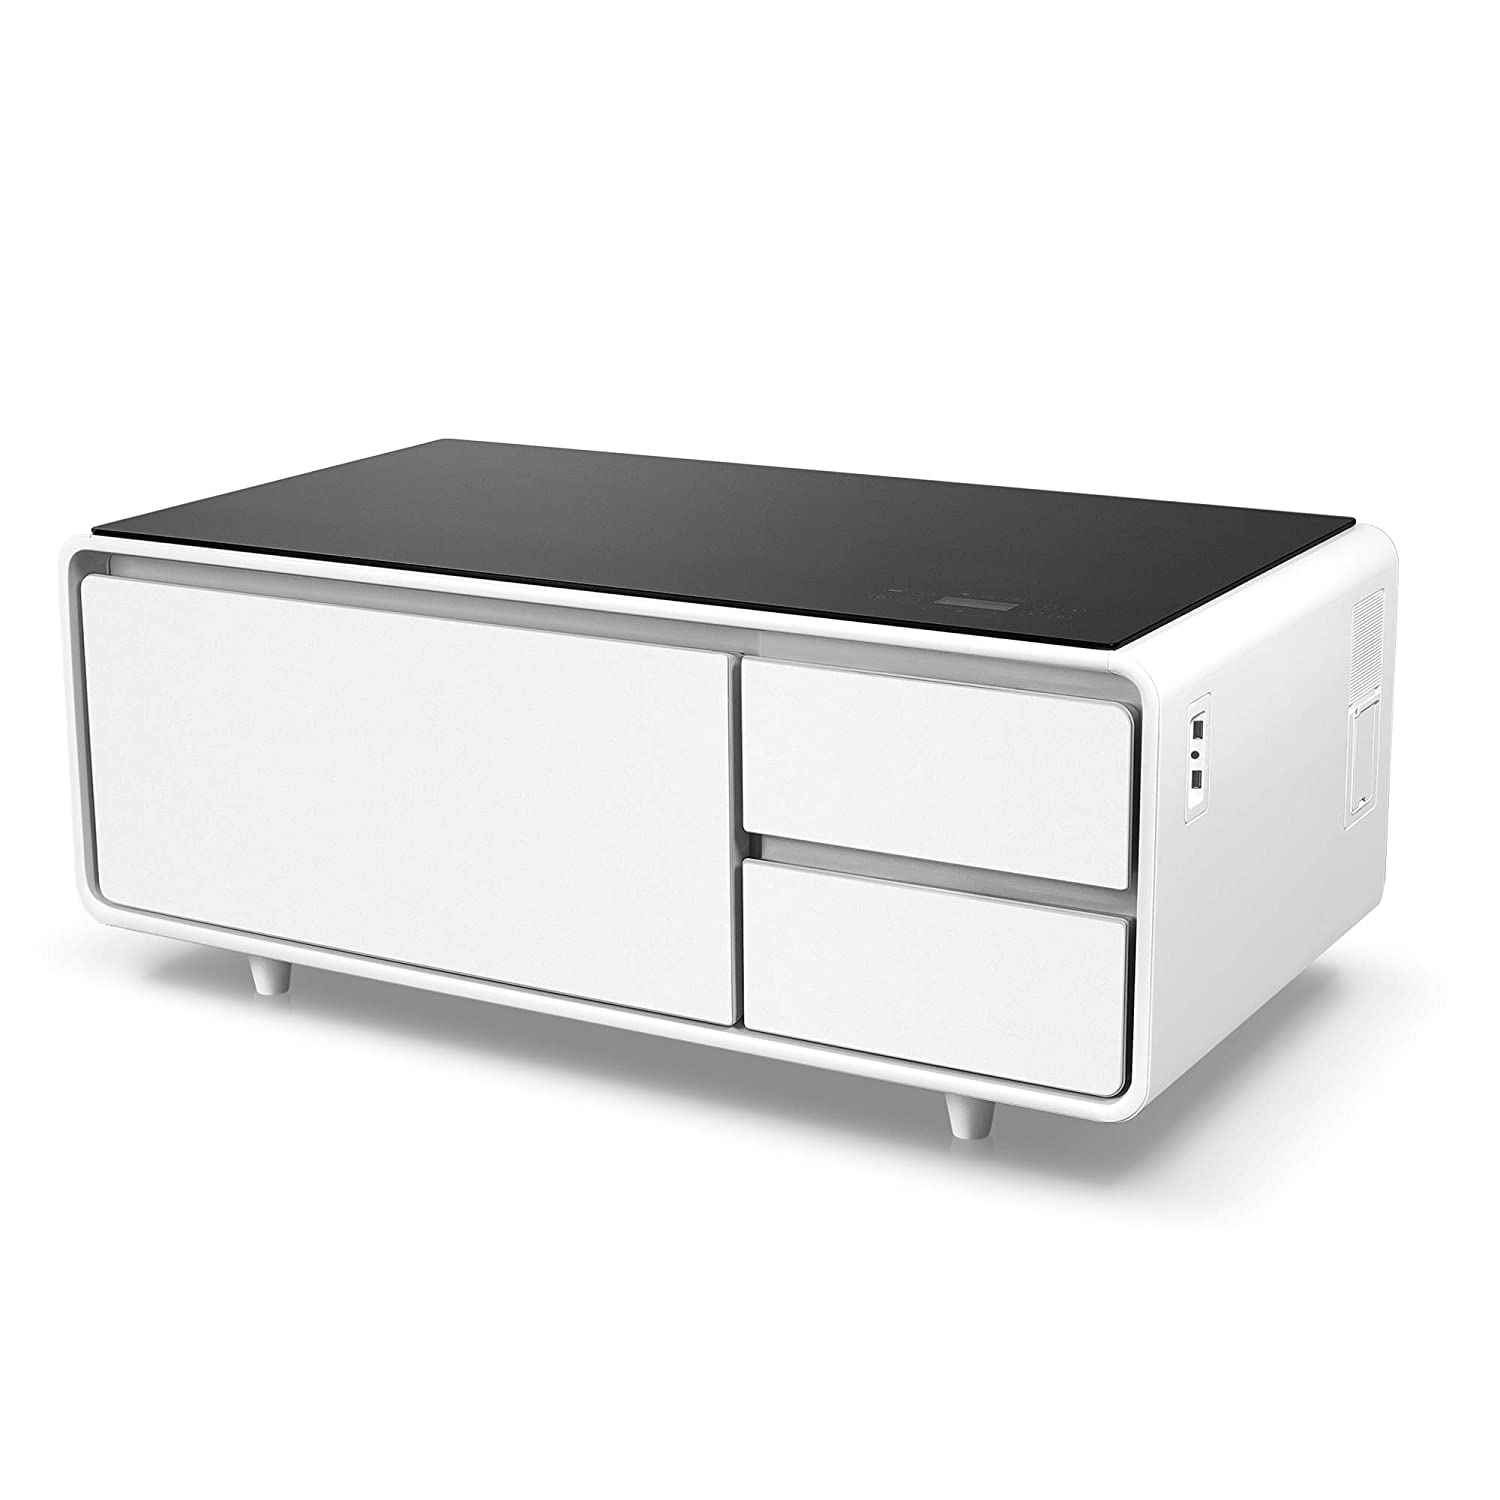 Refrigerator Coffee Table.Sobro Soctb300whbk Coffee Table With Refrigerator Drawer Bluetooth Speakers Led Lights Usb Charging Ports For Tablets Laptops Or A Cell Phone